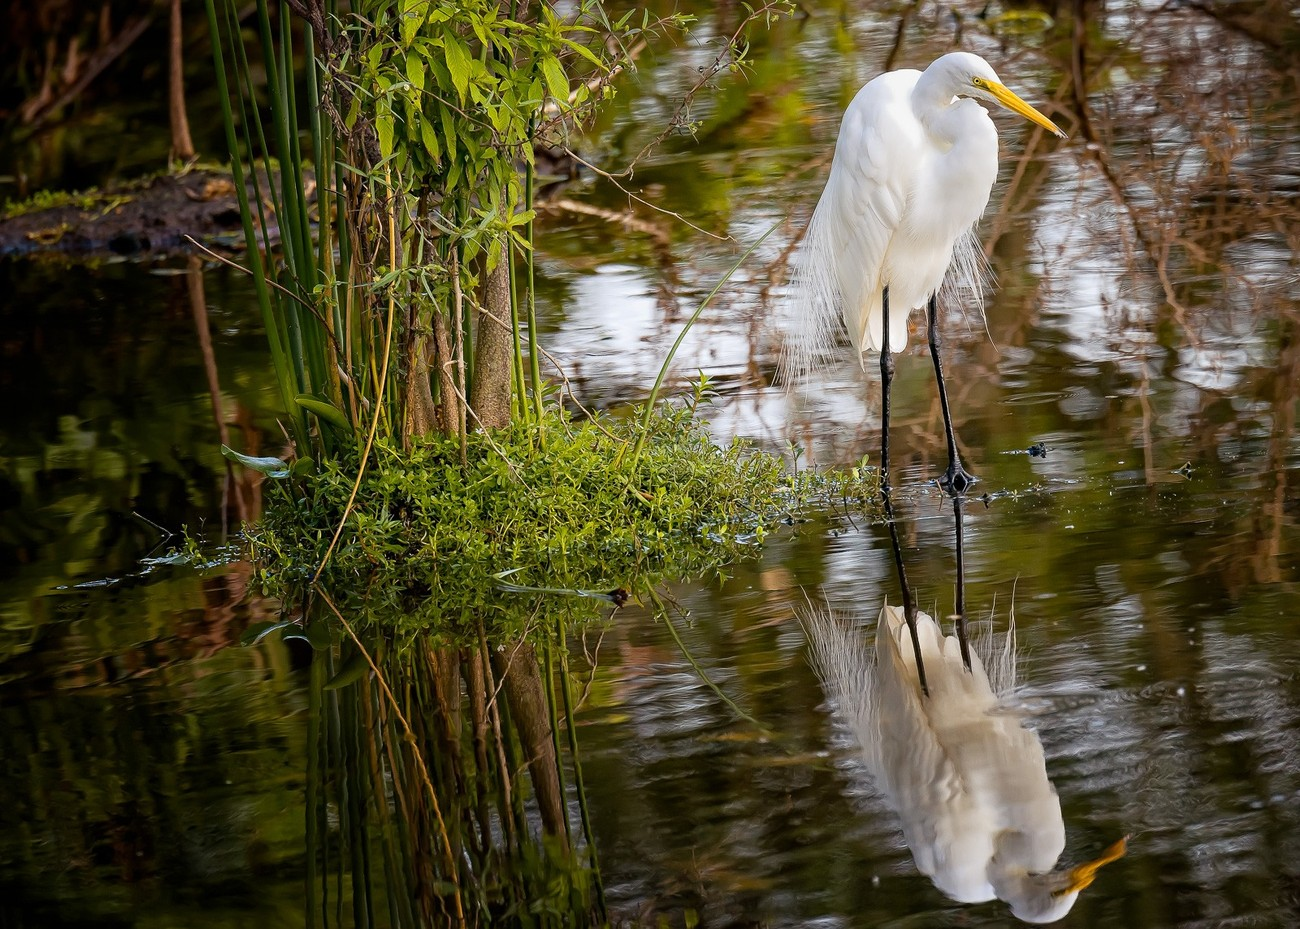 Reflections of a White Crane